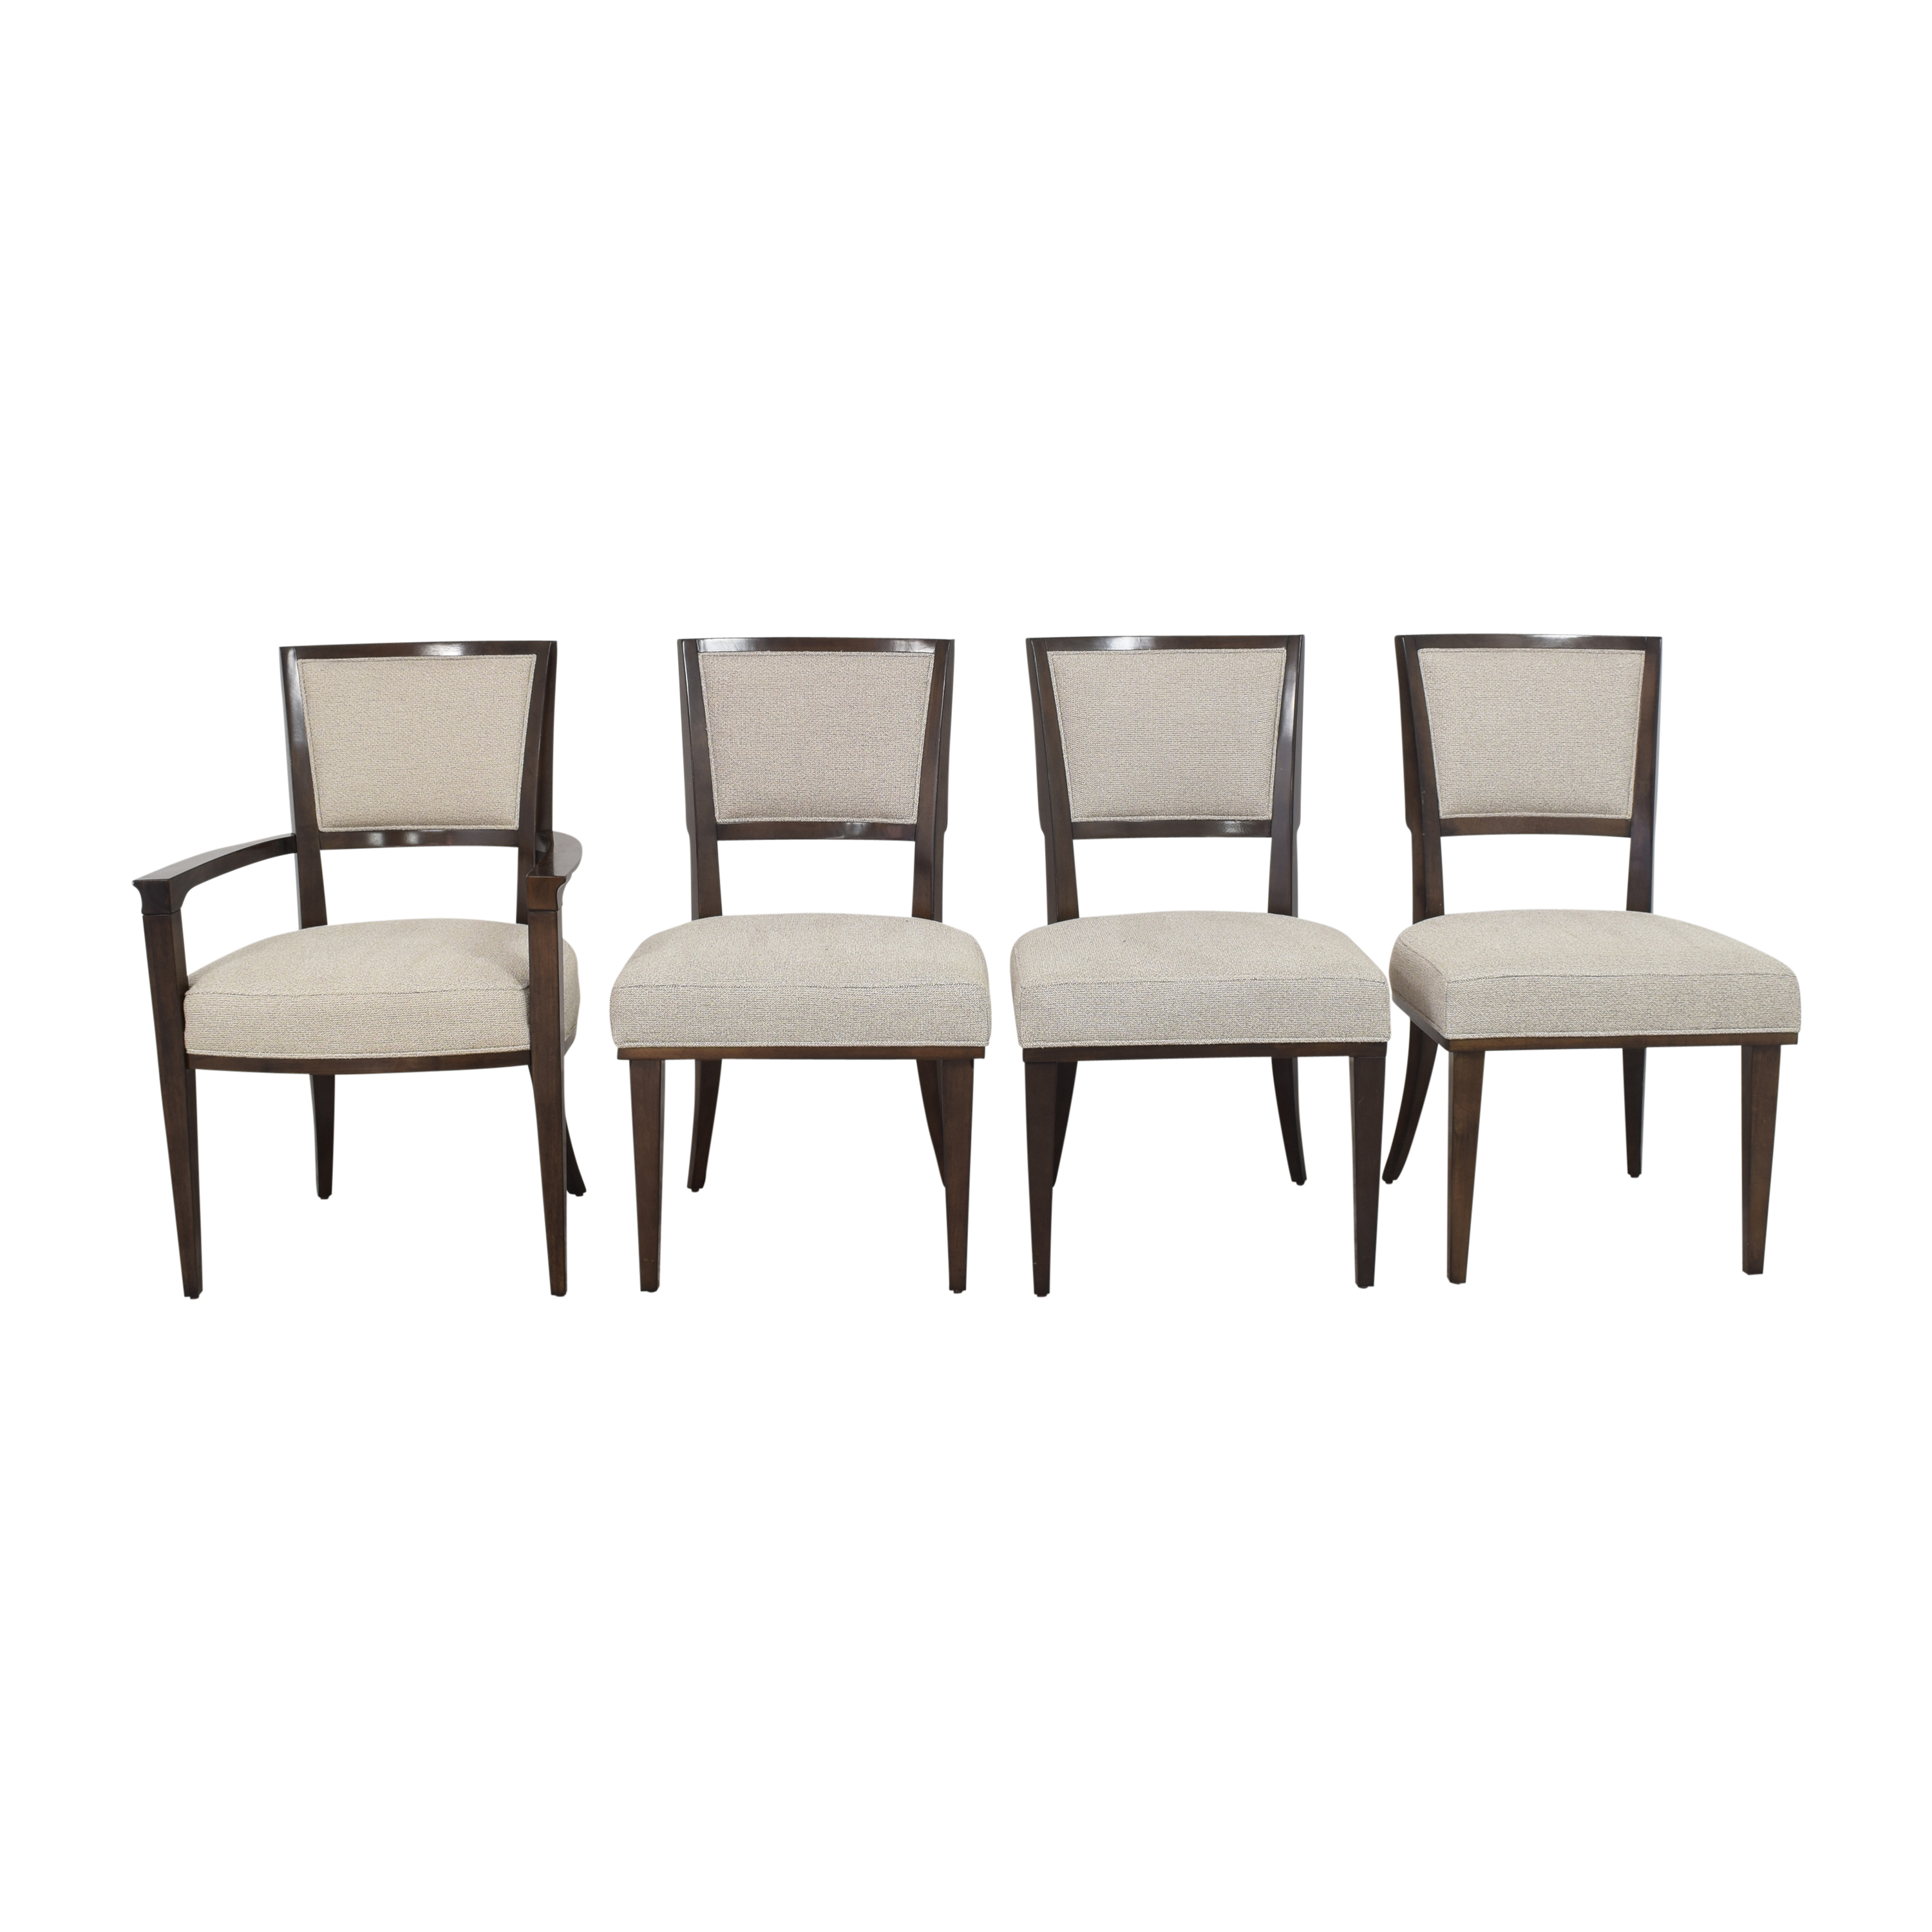 Caracole Caracole Moderne Dining Chairs nj